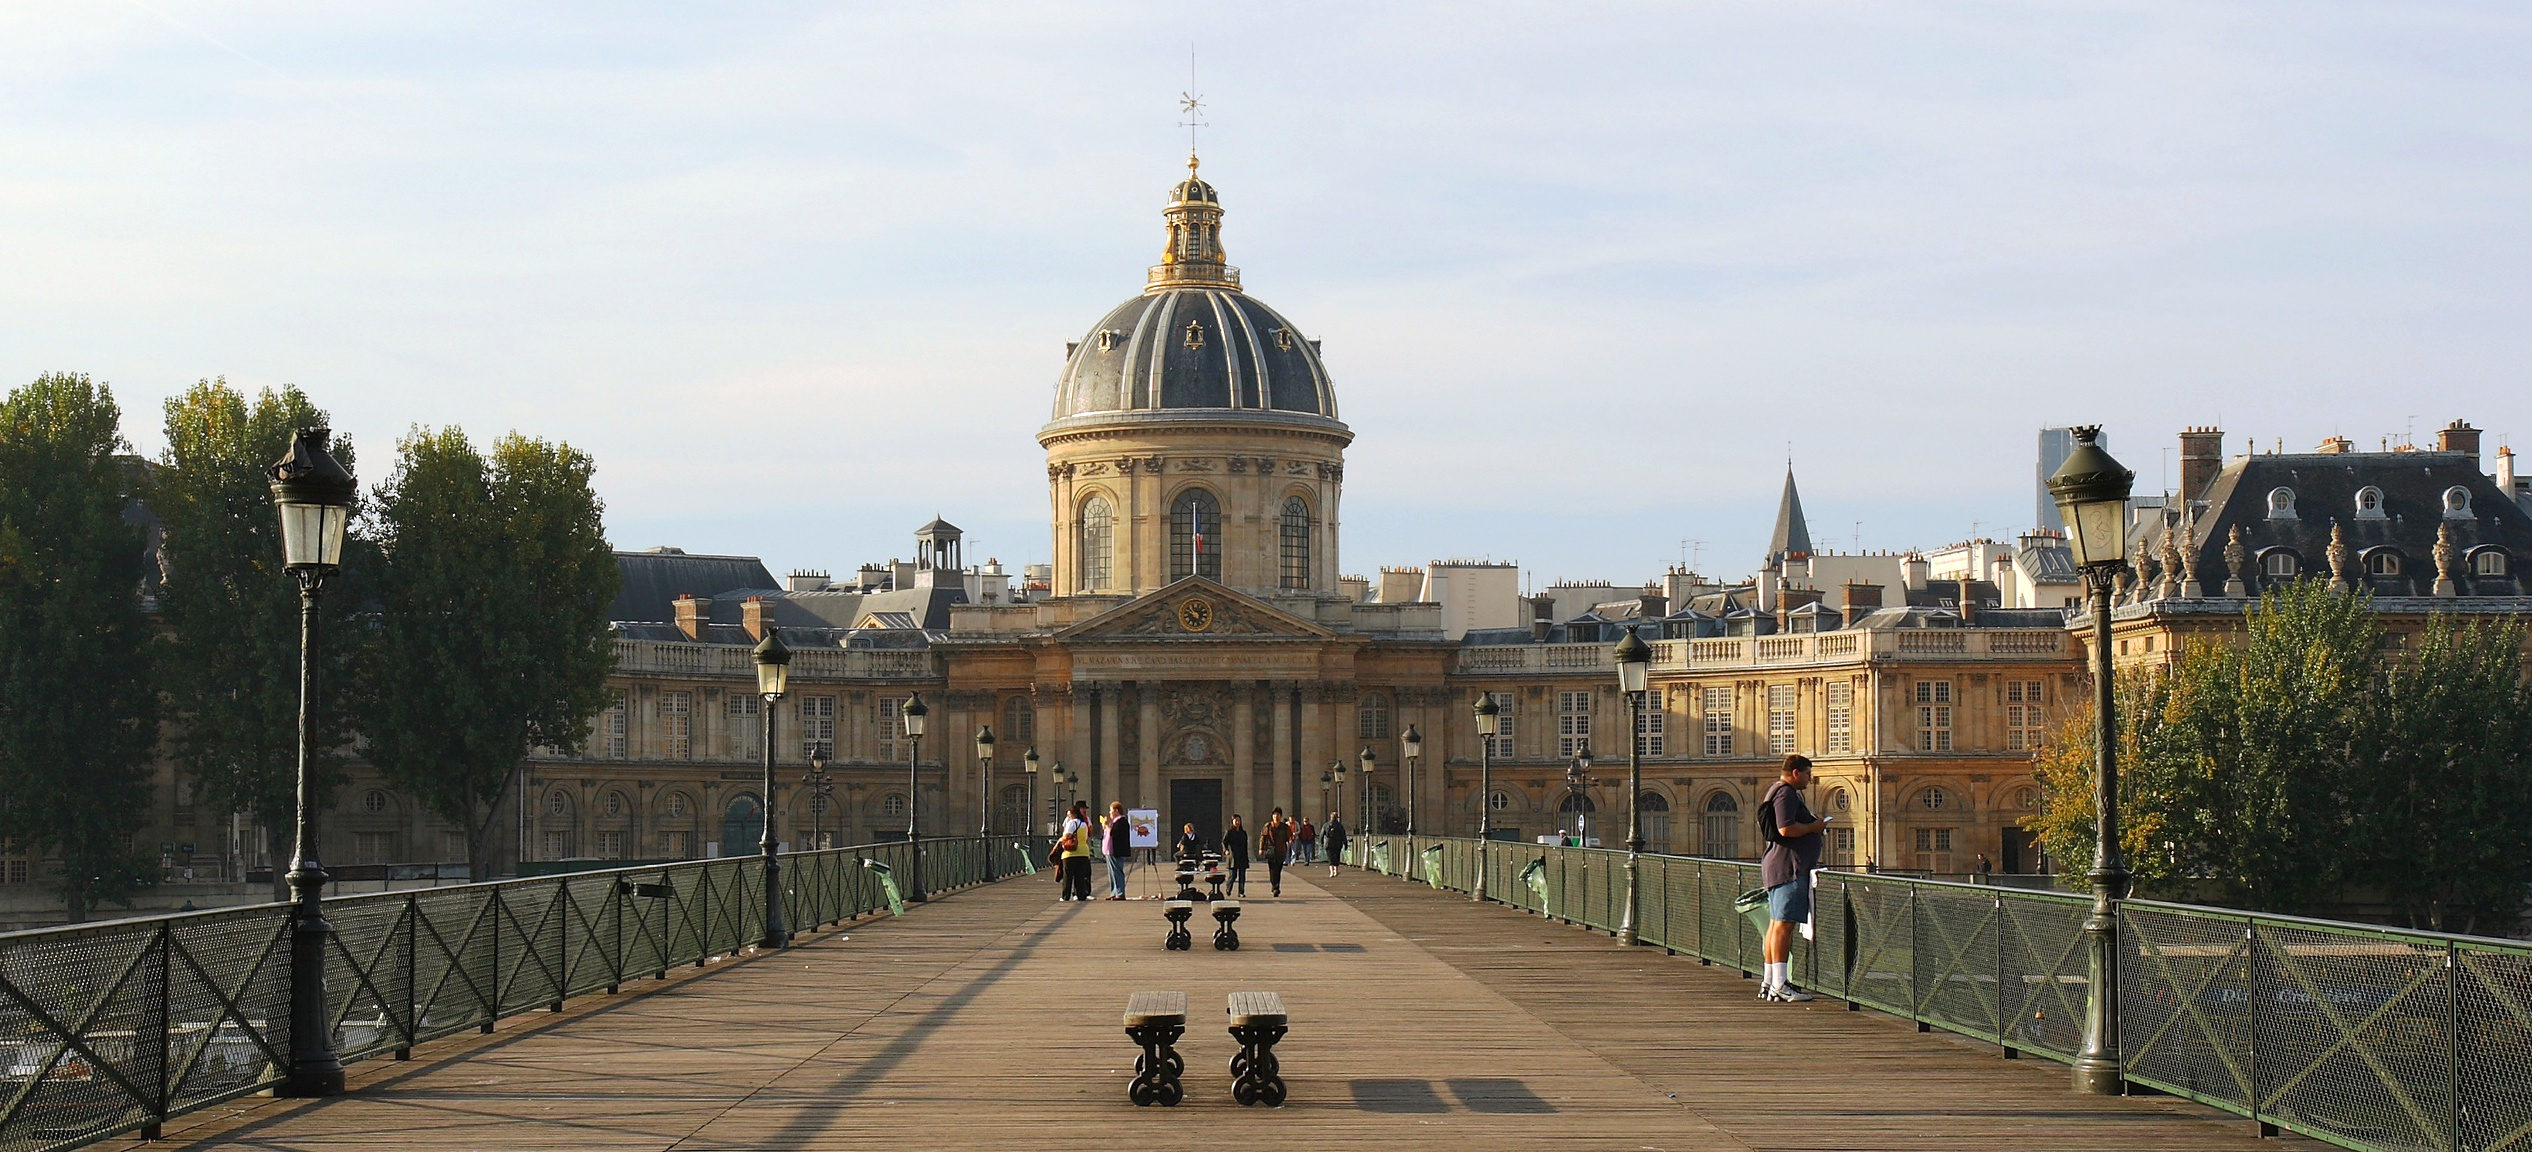 The Institut de France viewed from the [[Pont des Arts]]